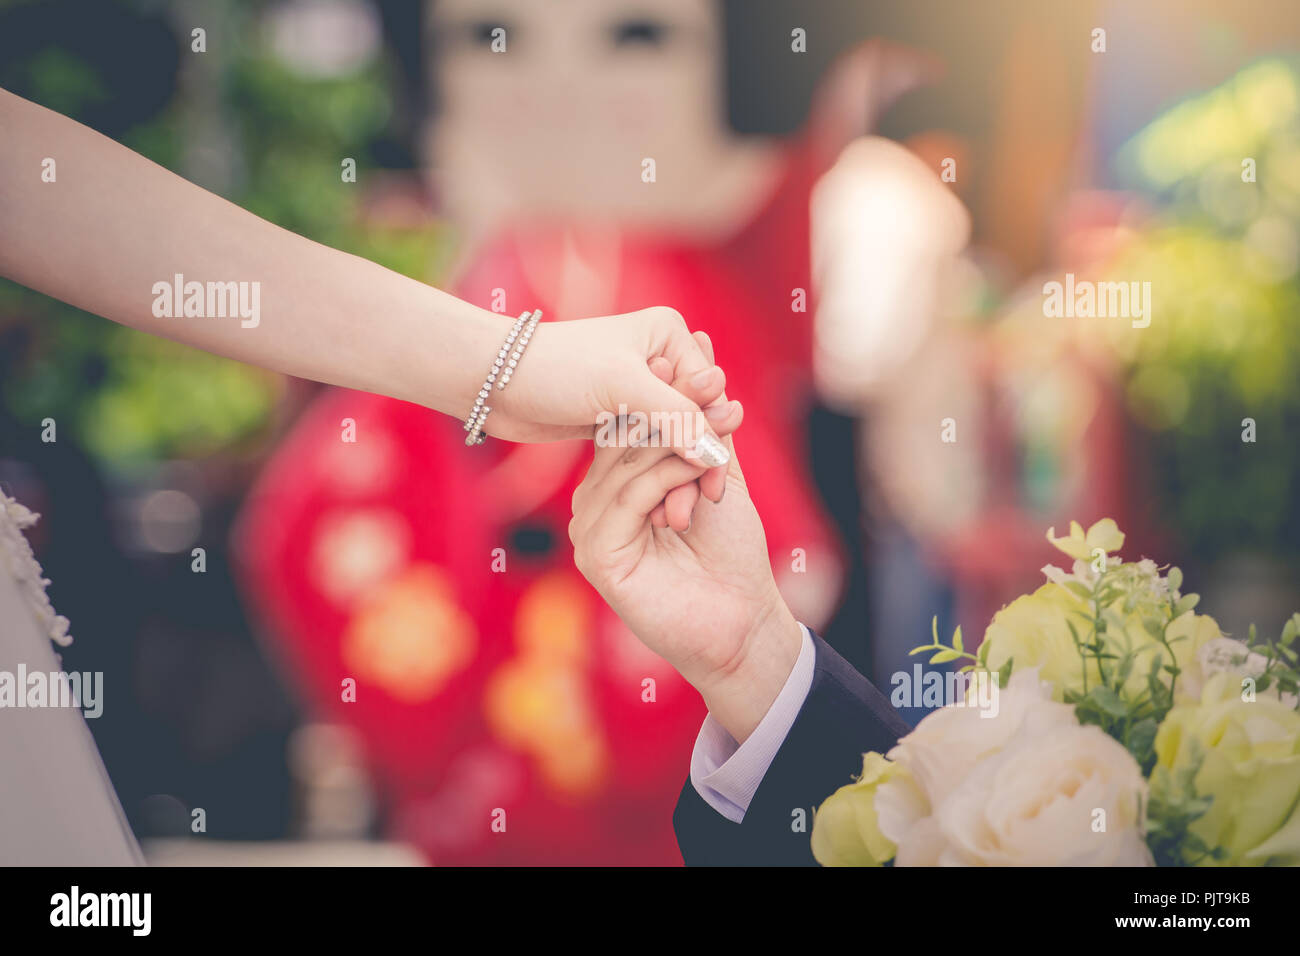 Young express love with a handshake as a symbol of love and marriage. - Stock Image